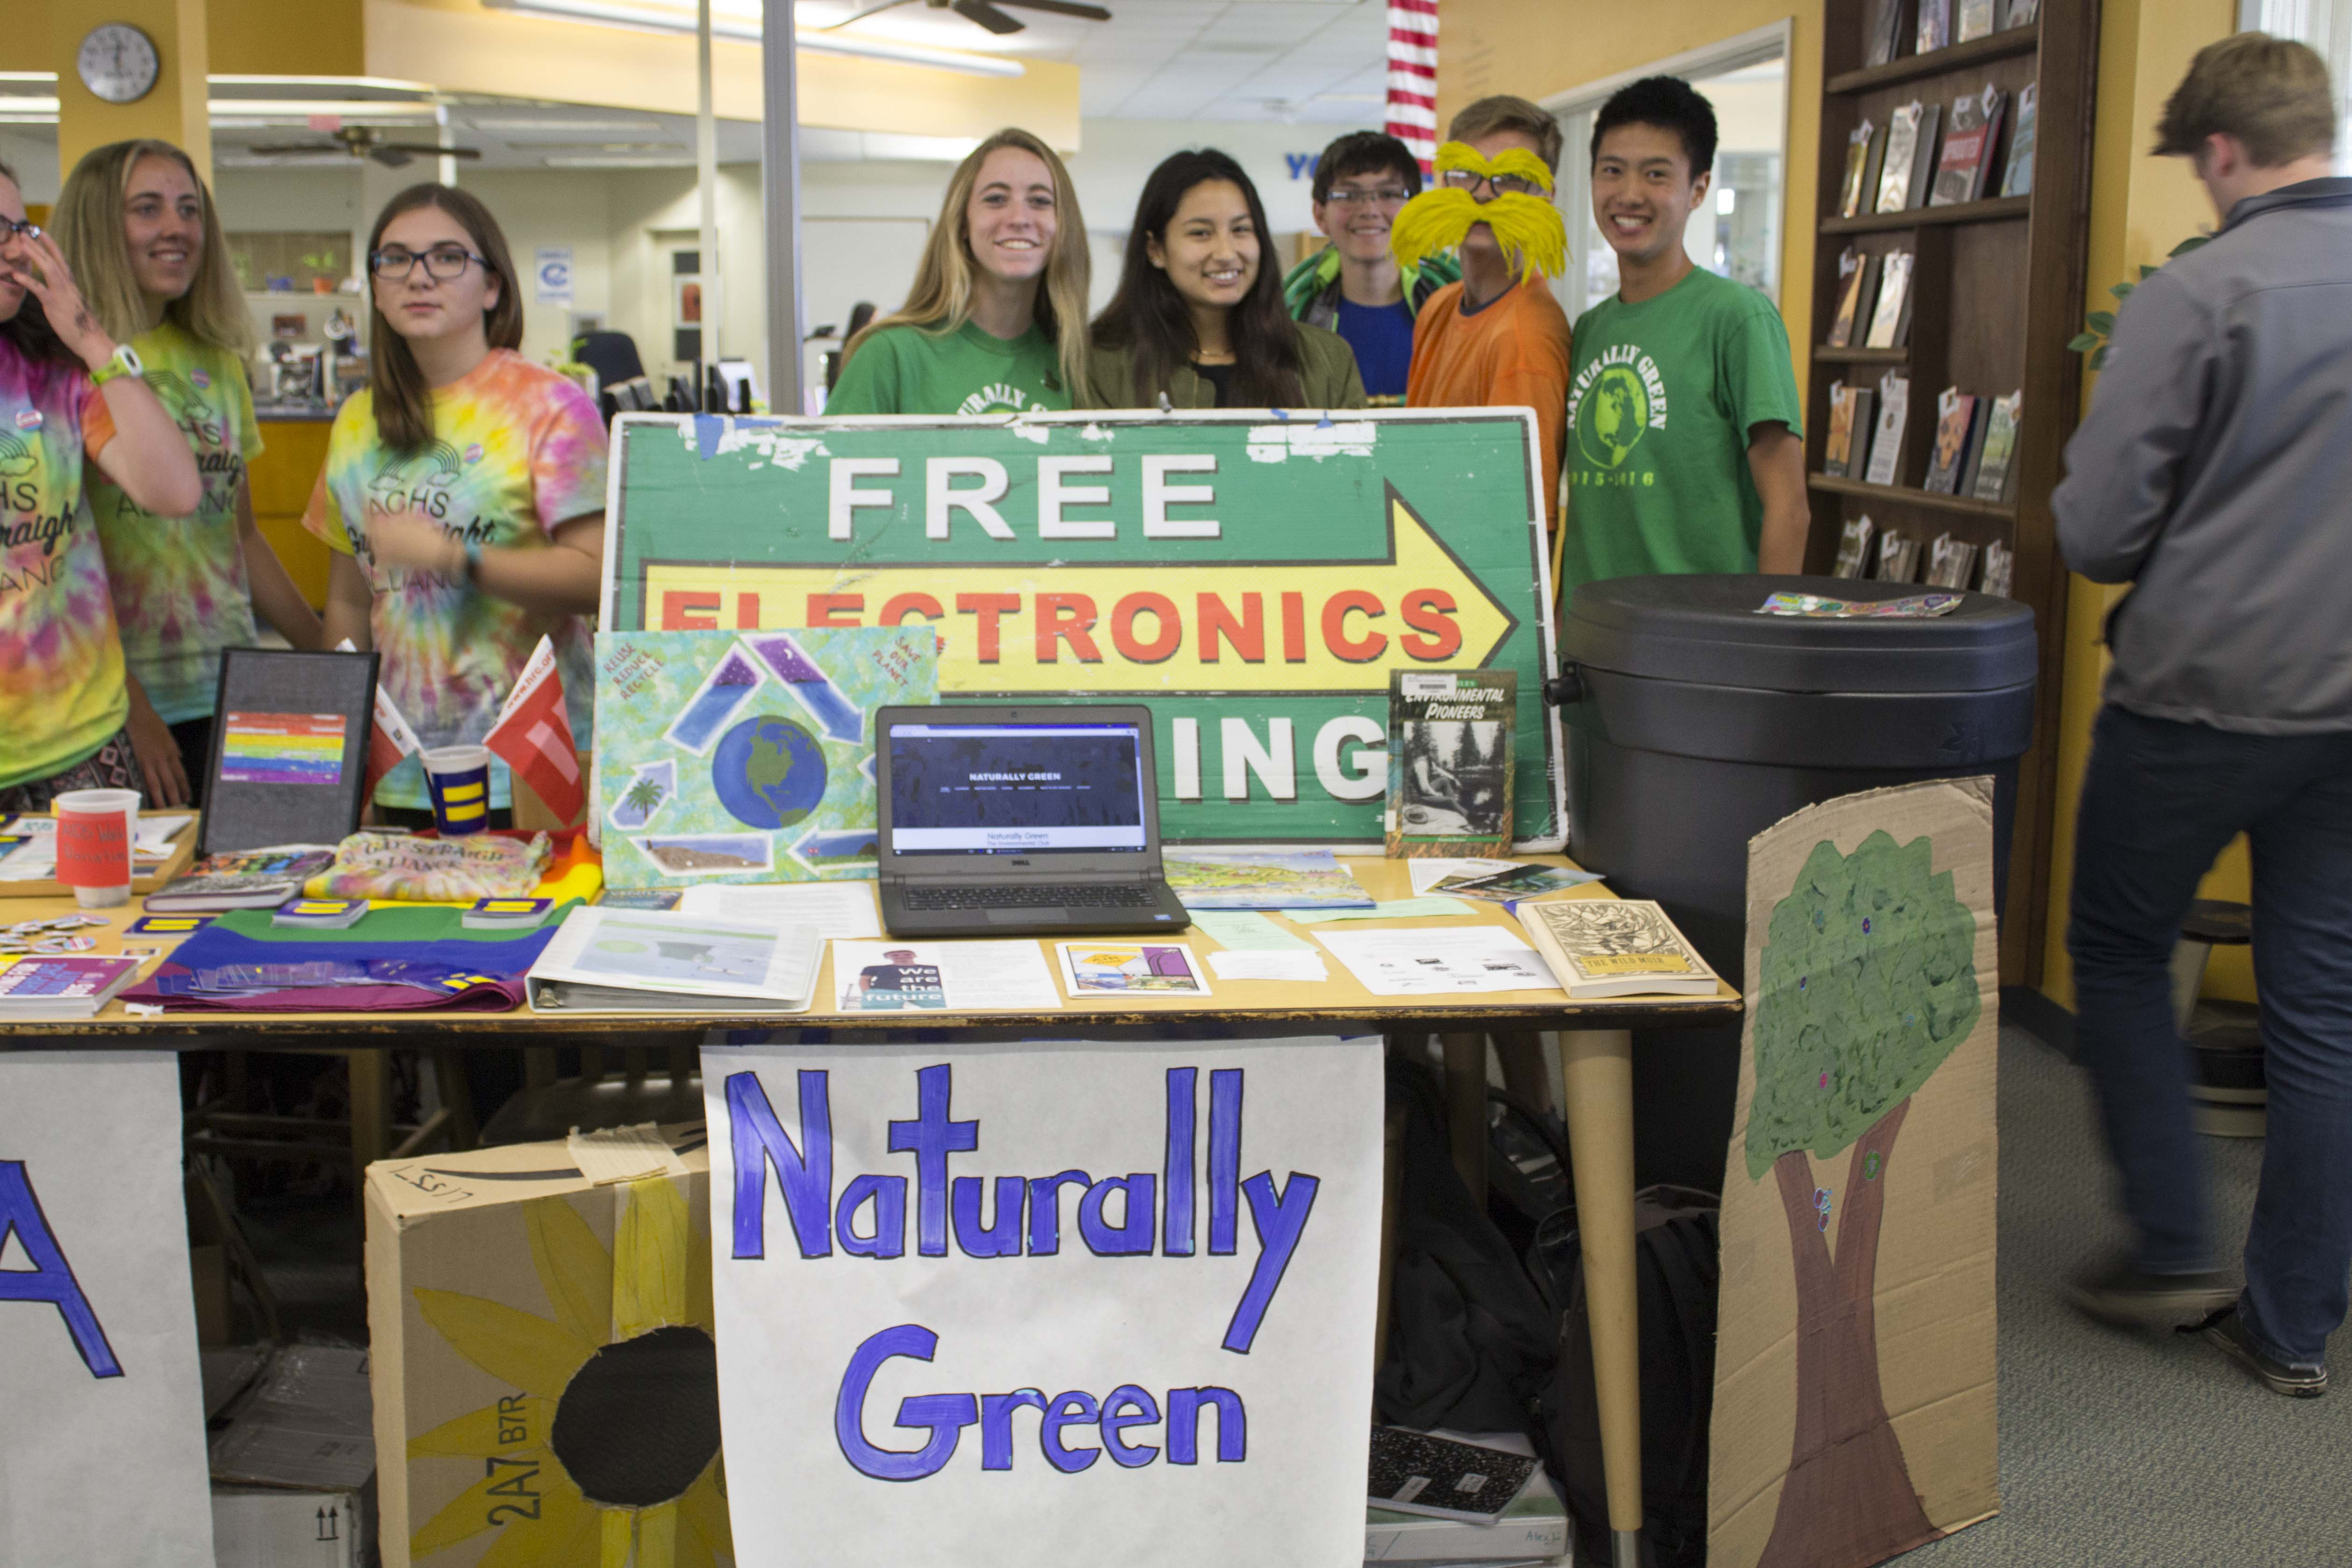 Maia Griffith, Lilly Figueroa, Xander, Caleb, and Alex Li from Naturally Green, an environmental club on campus.